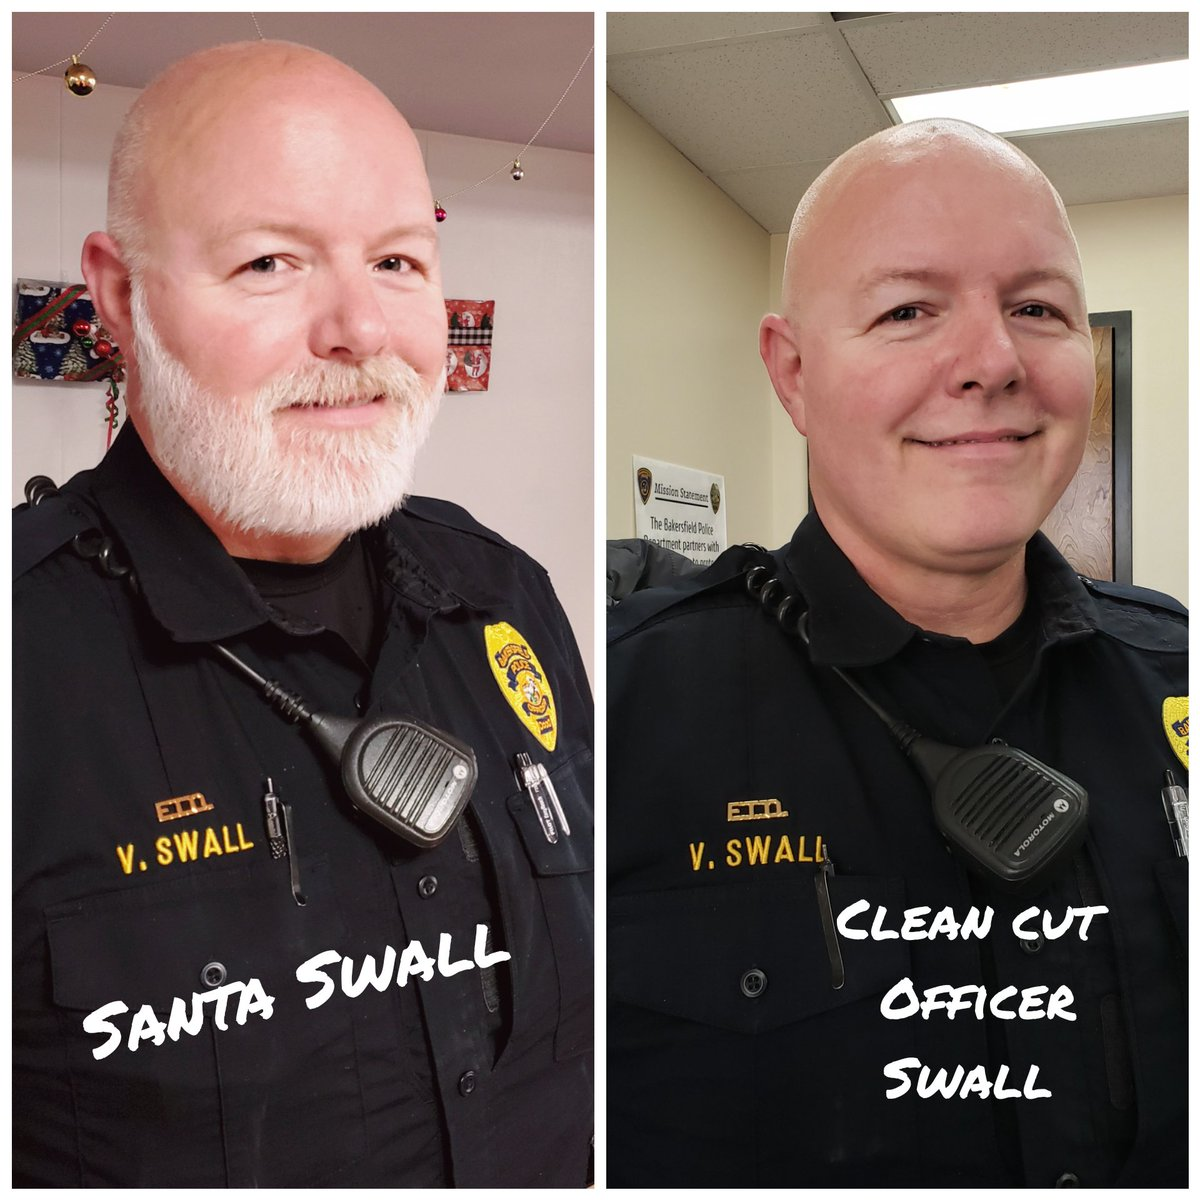 """Last month we held our #FuzzforFunds #fundraiser, which closed with $4K raised for the Alliance Against Family Violence & Sexual Assault, & the family of Deputy Harker. Officer Swall won #BestBeard. Good try to our """"Worst Beard"""", Officer Celedon  Thank you to all who donated! pic.twitter.com/7JdwltR5sW"""